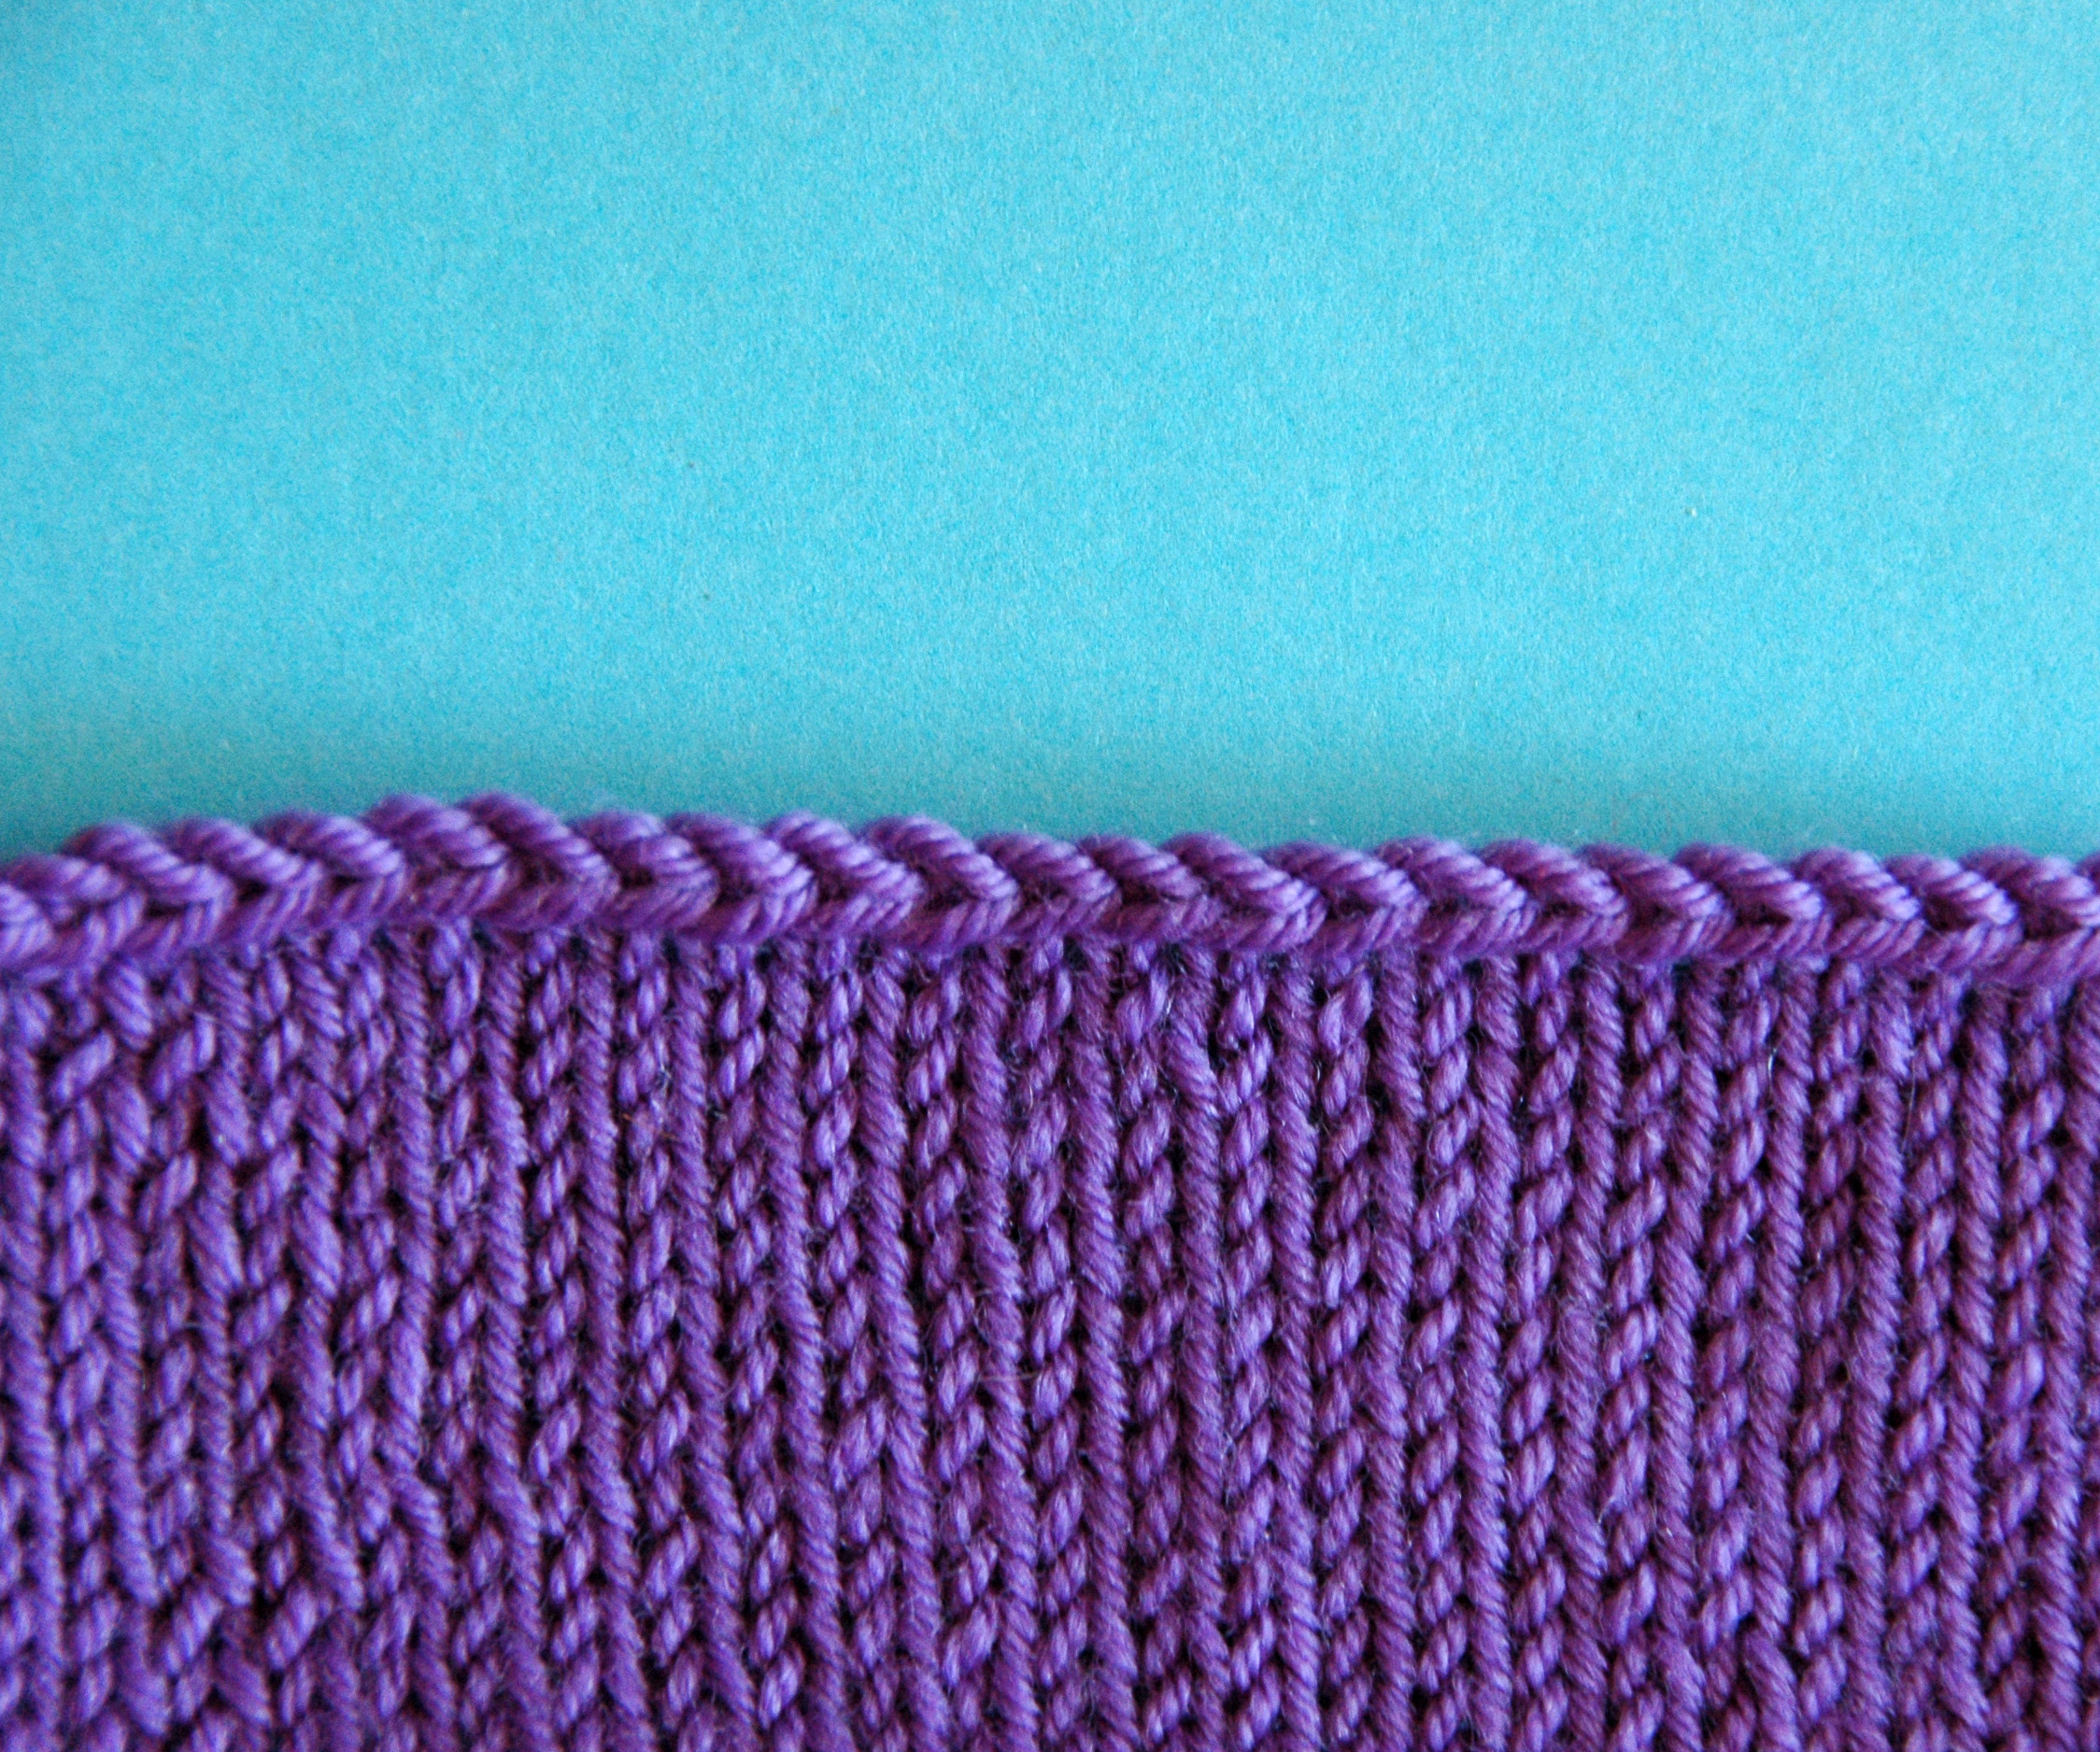 Holly Chayes » 2 Stretchy Bind Offs Perfect For Shawls